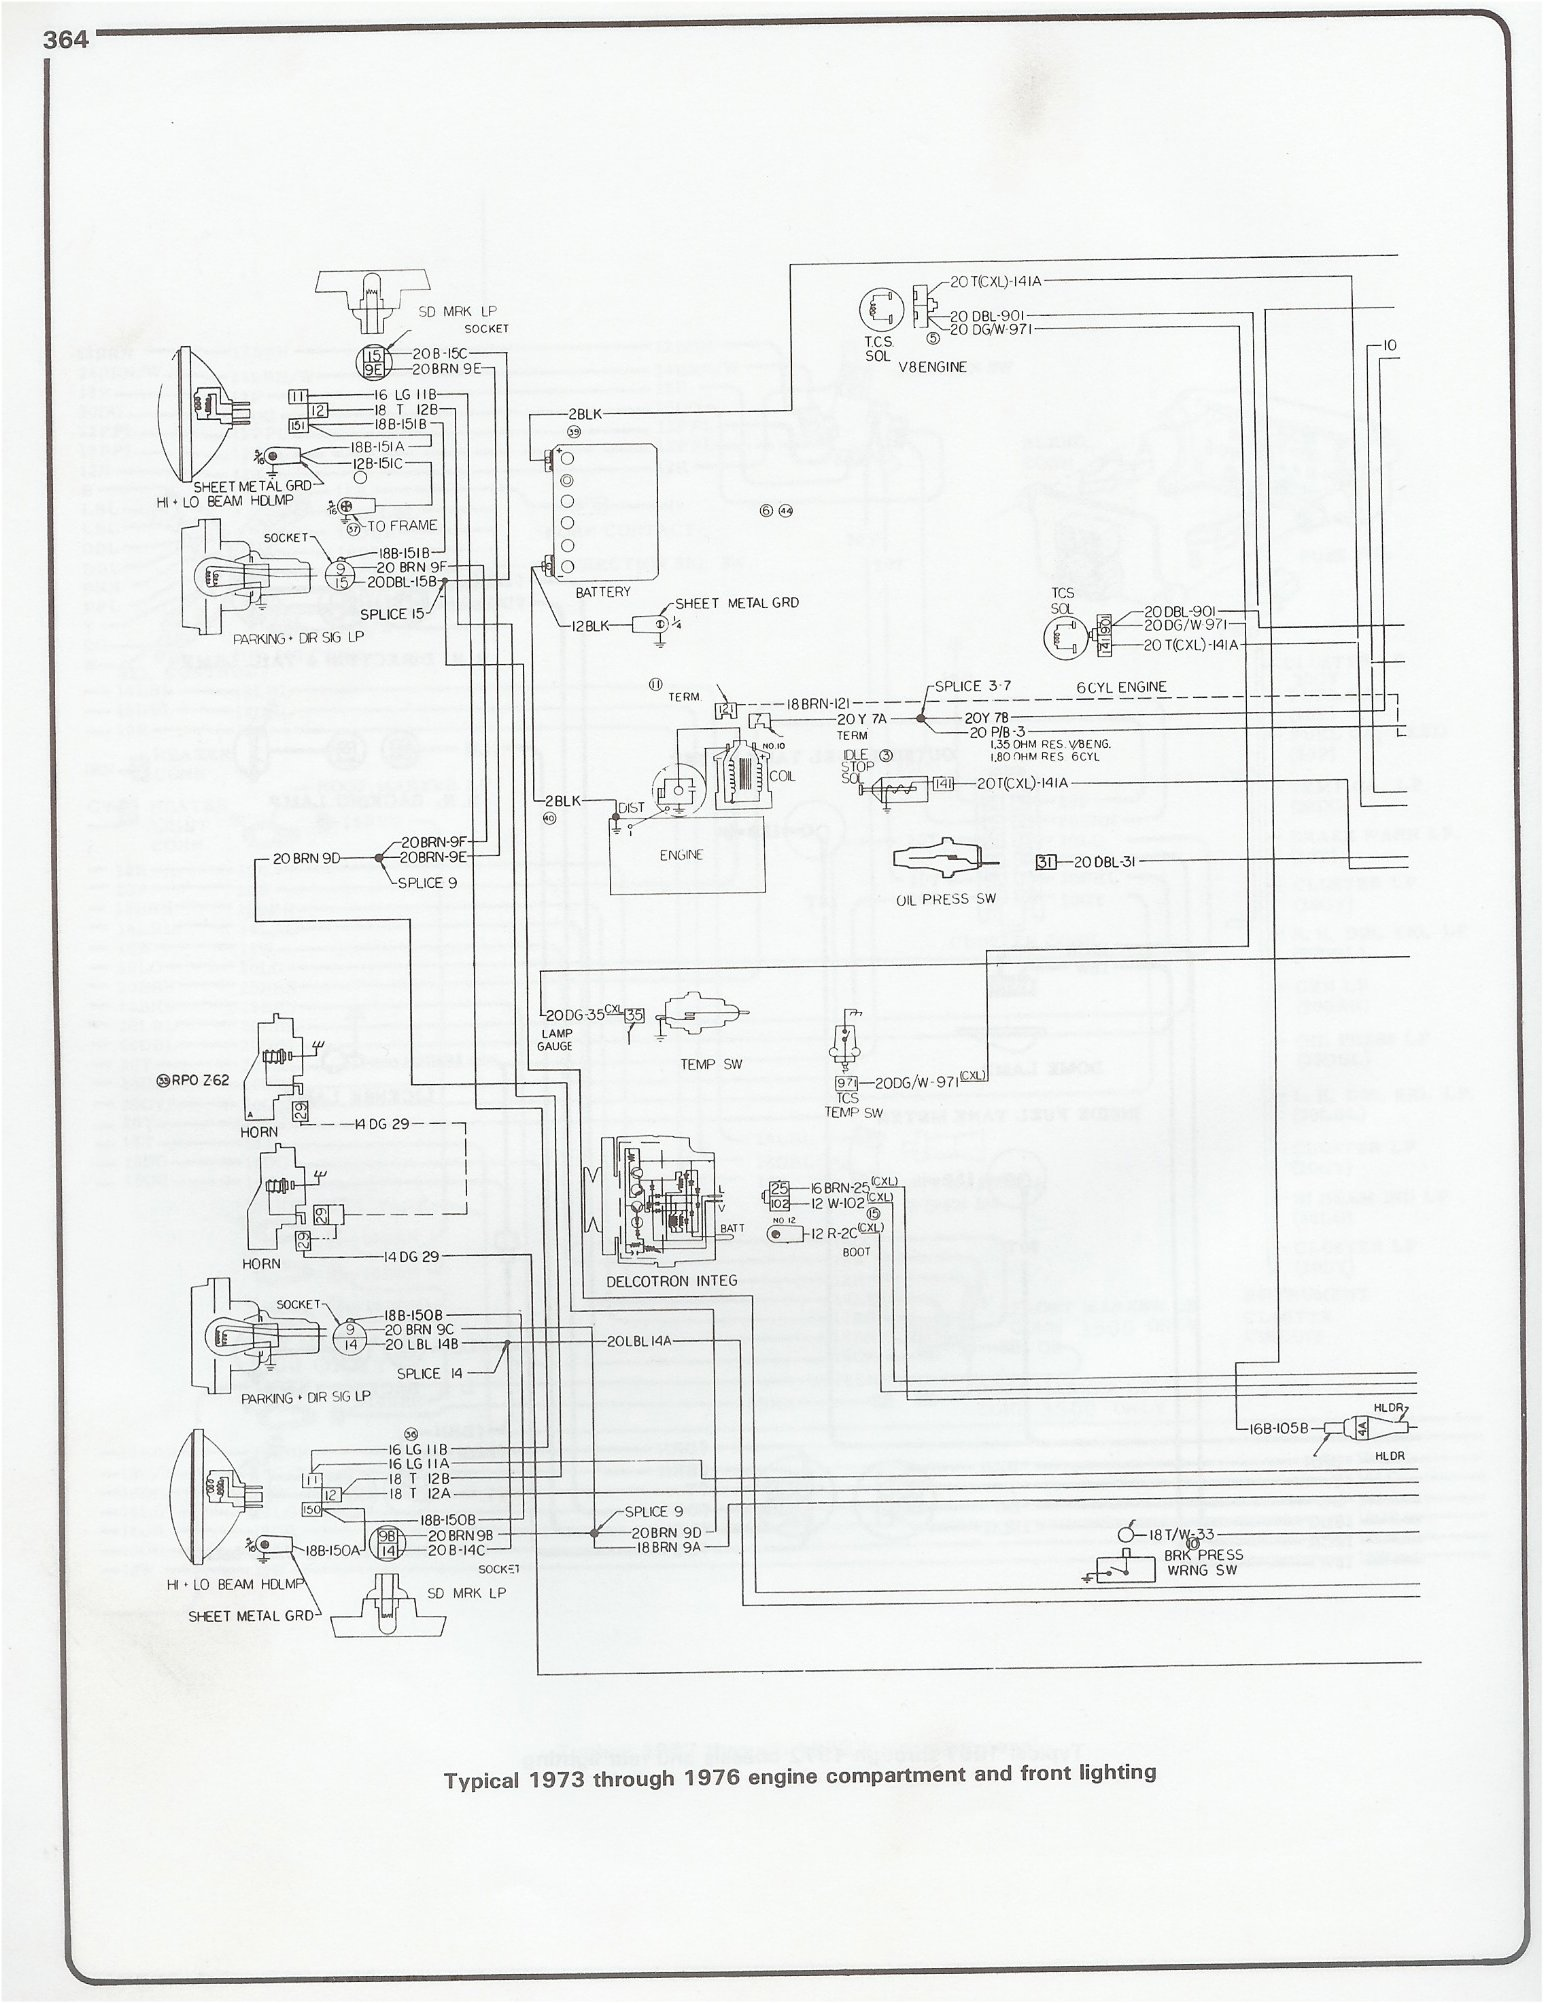 73 76_eng_frt_light complete 73 87 wiring diagrams 69 Nova Ignition Switch Diagram at crackthecode.co